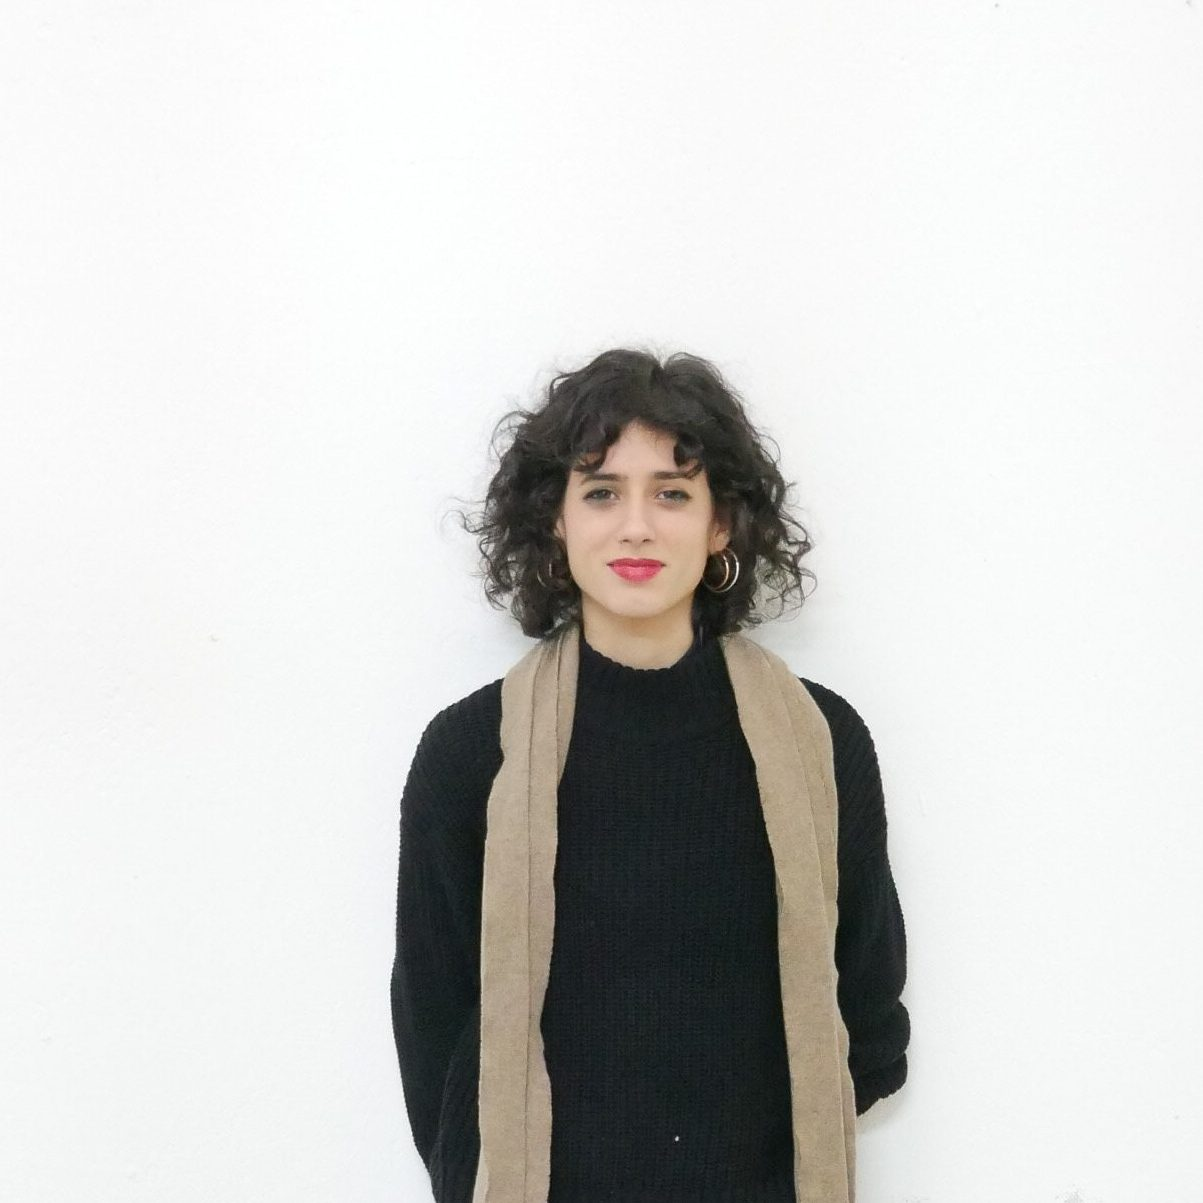 Team Photo of Julia Donate, head of visual communication for GlogauAIR Art Space and Residency Berlin